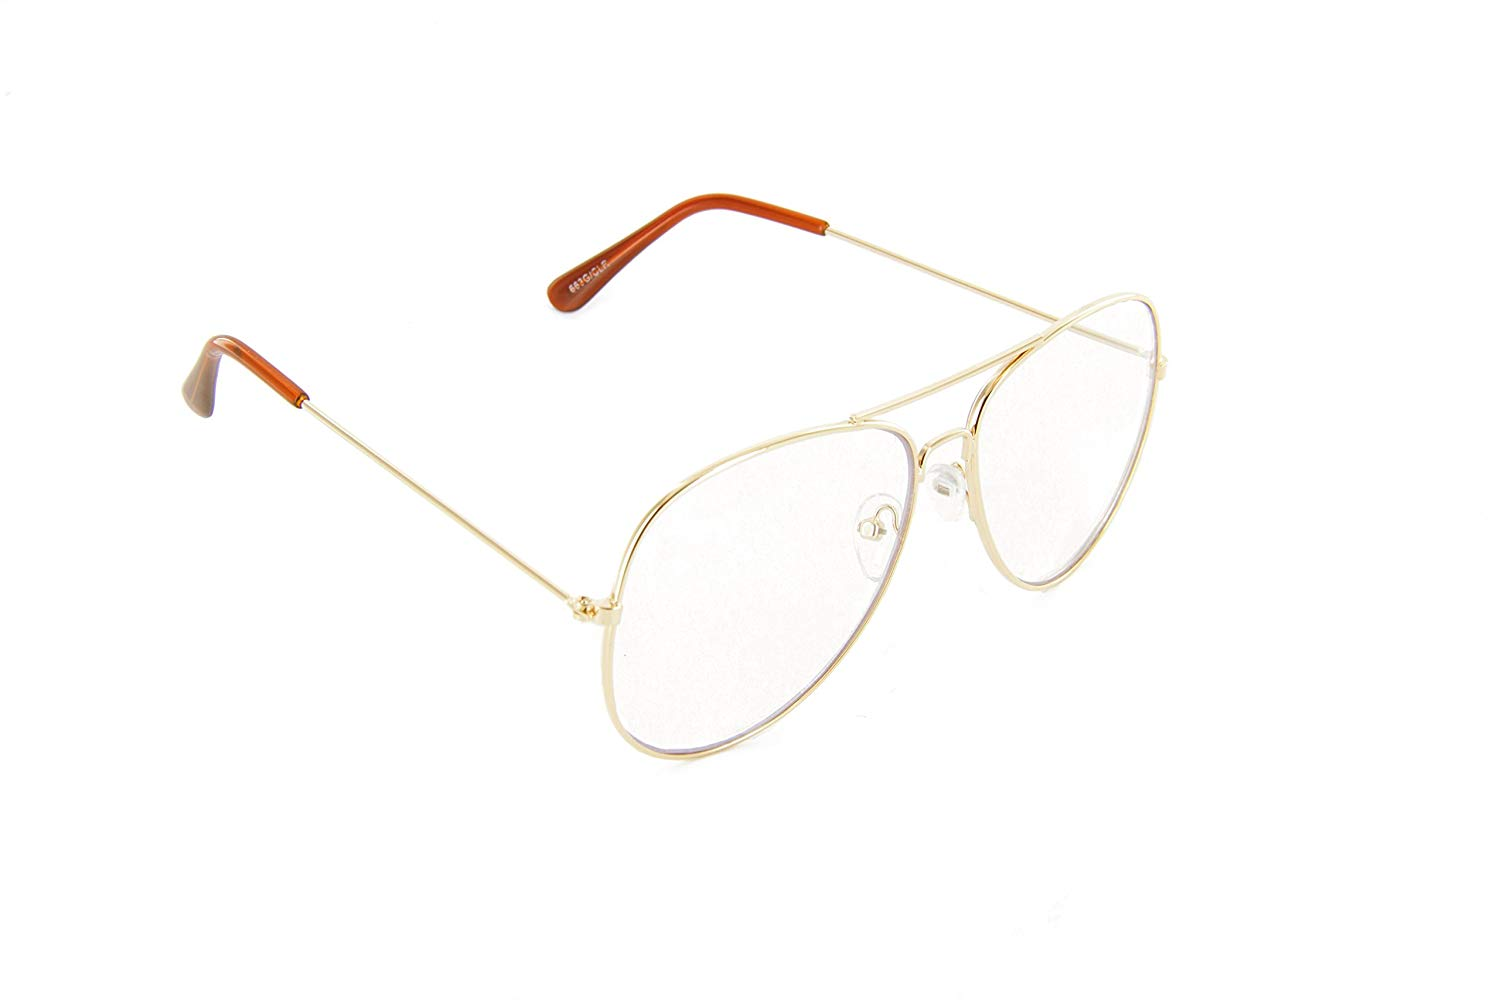 804e718486 Get Quotations · Classic Aviator Glasses Anti Glare Night Vision Driving  Lens Mens Womens